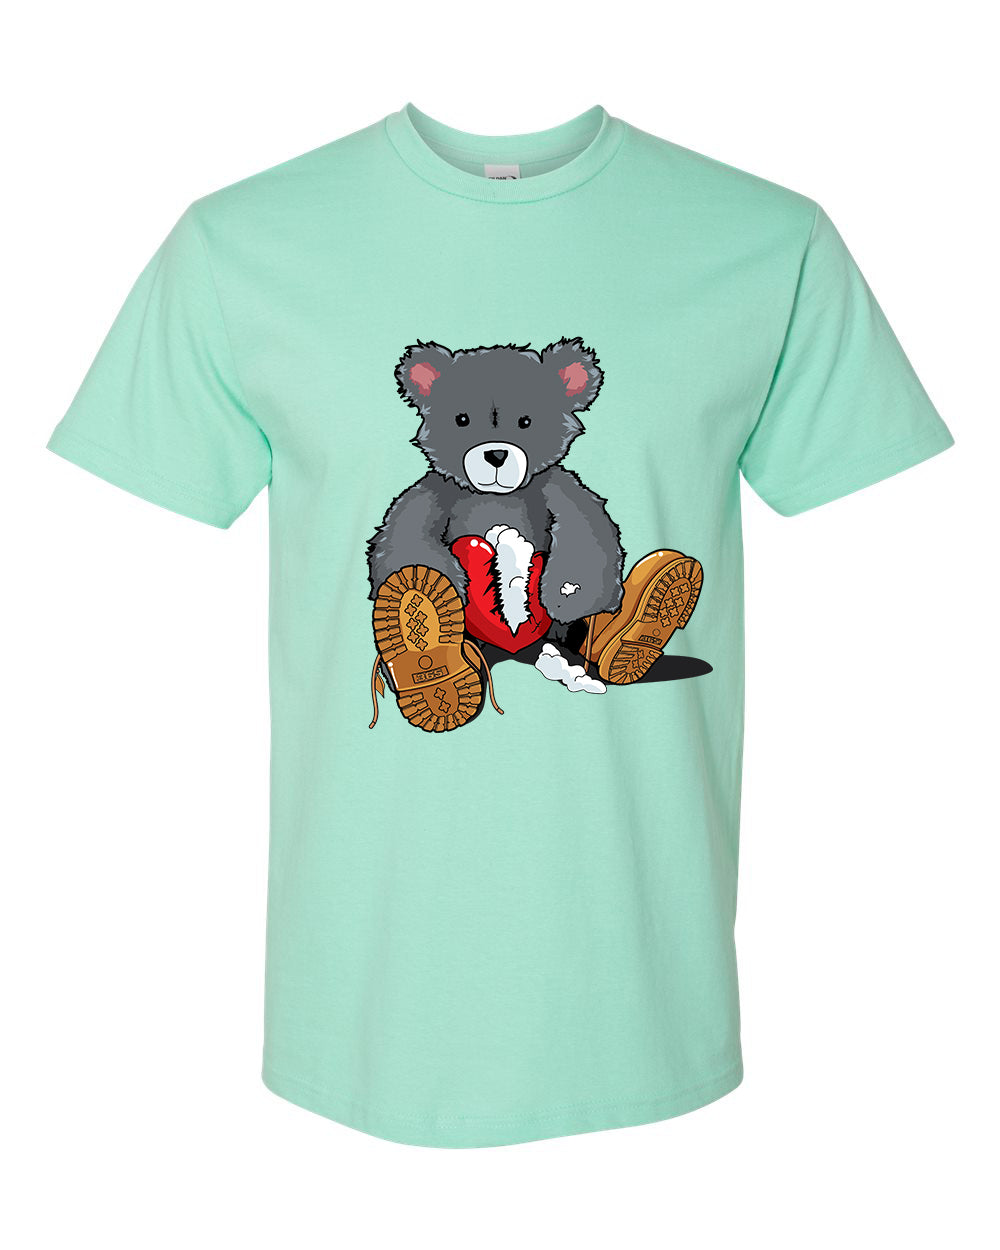 365 Clothing Broken Heart Bear T-Shirt -Mint